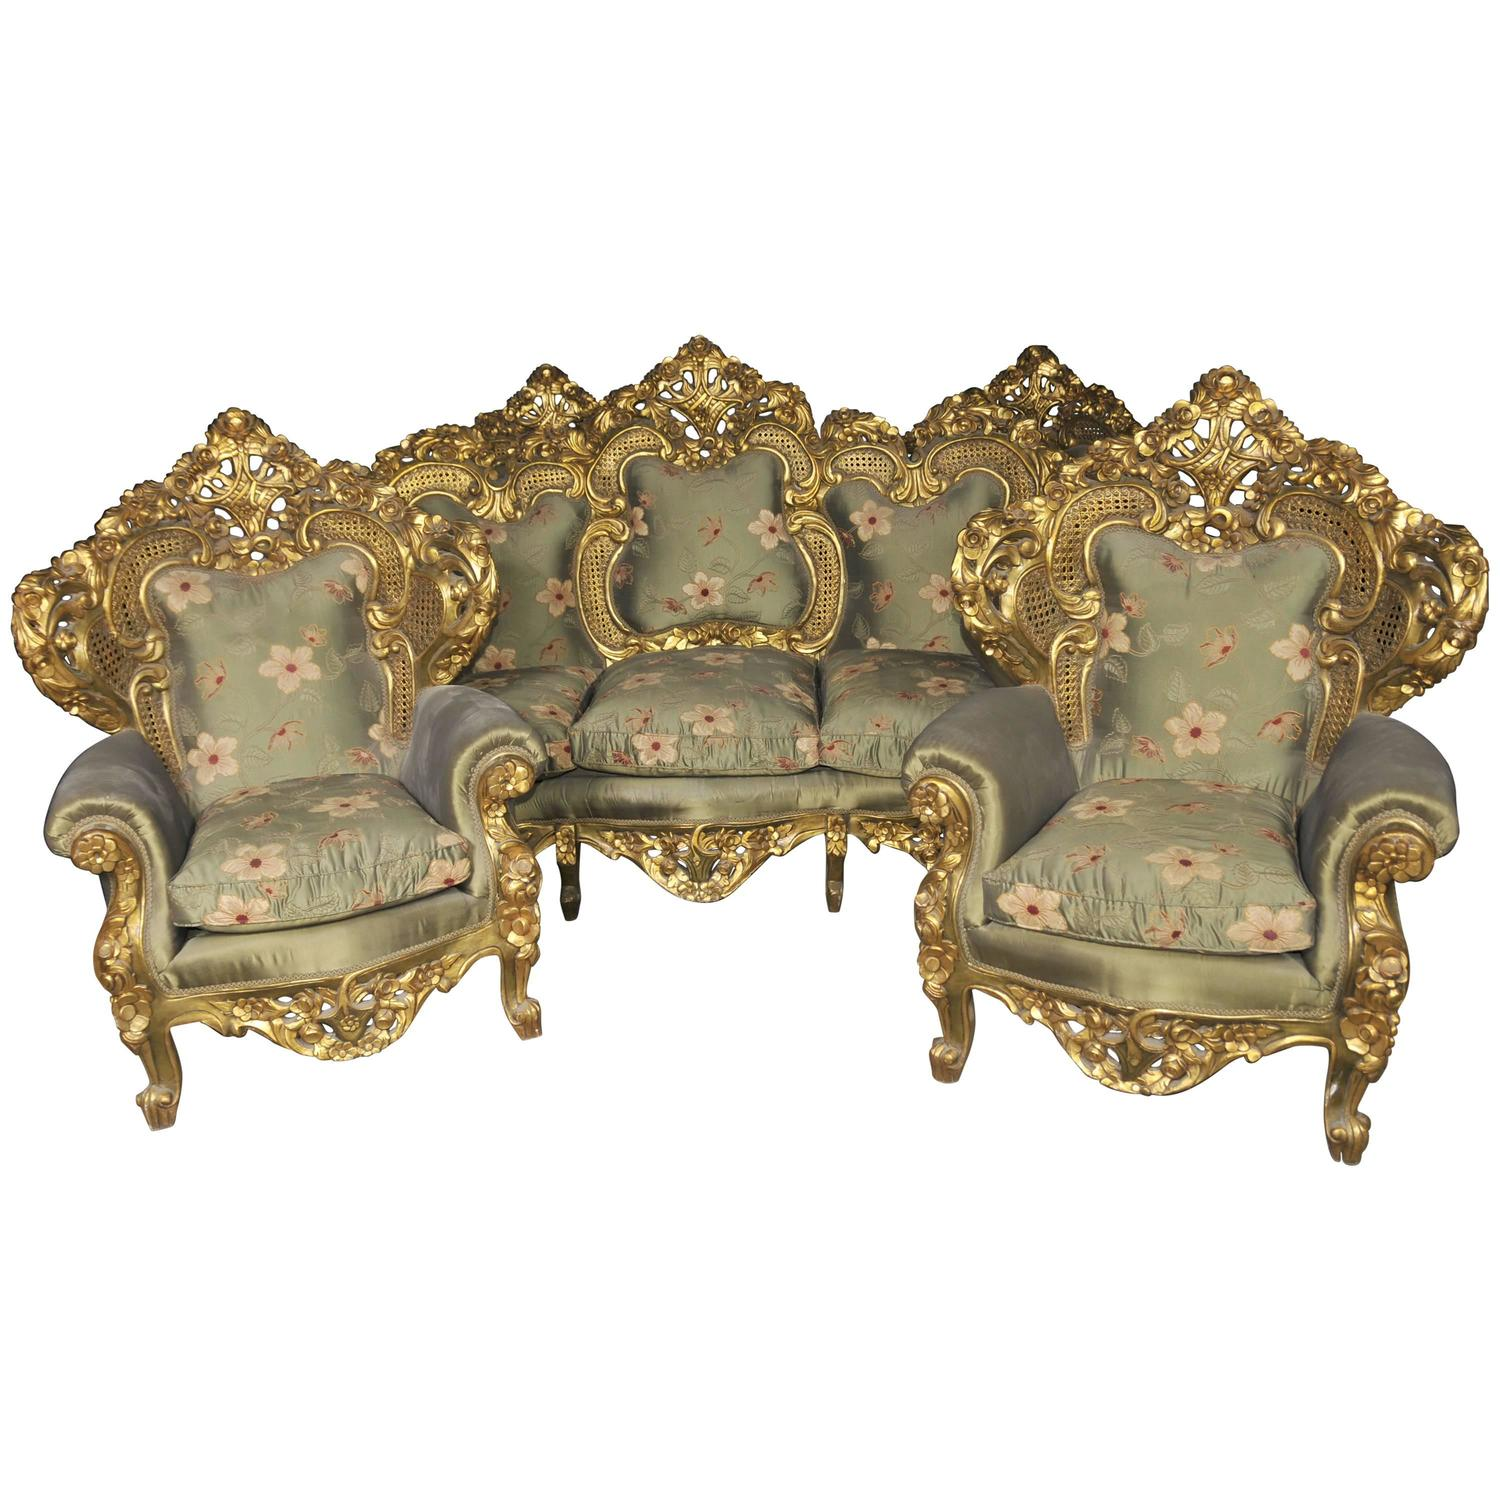 Antique french rococo sofa suite gilt armchairs at 1stdibs for Antique baroque furniture